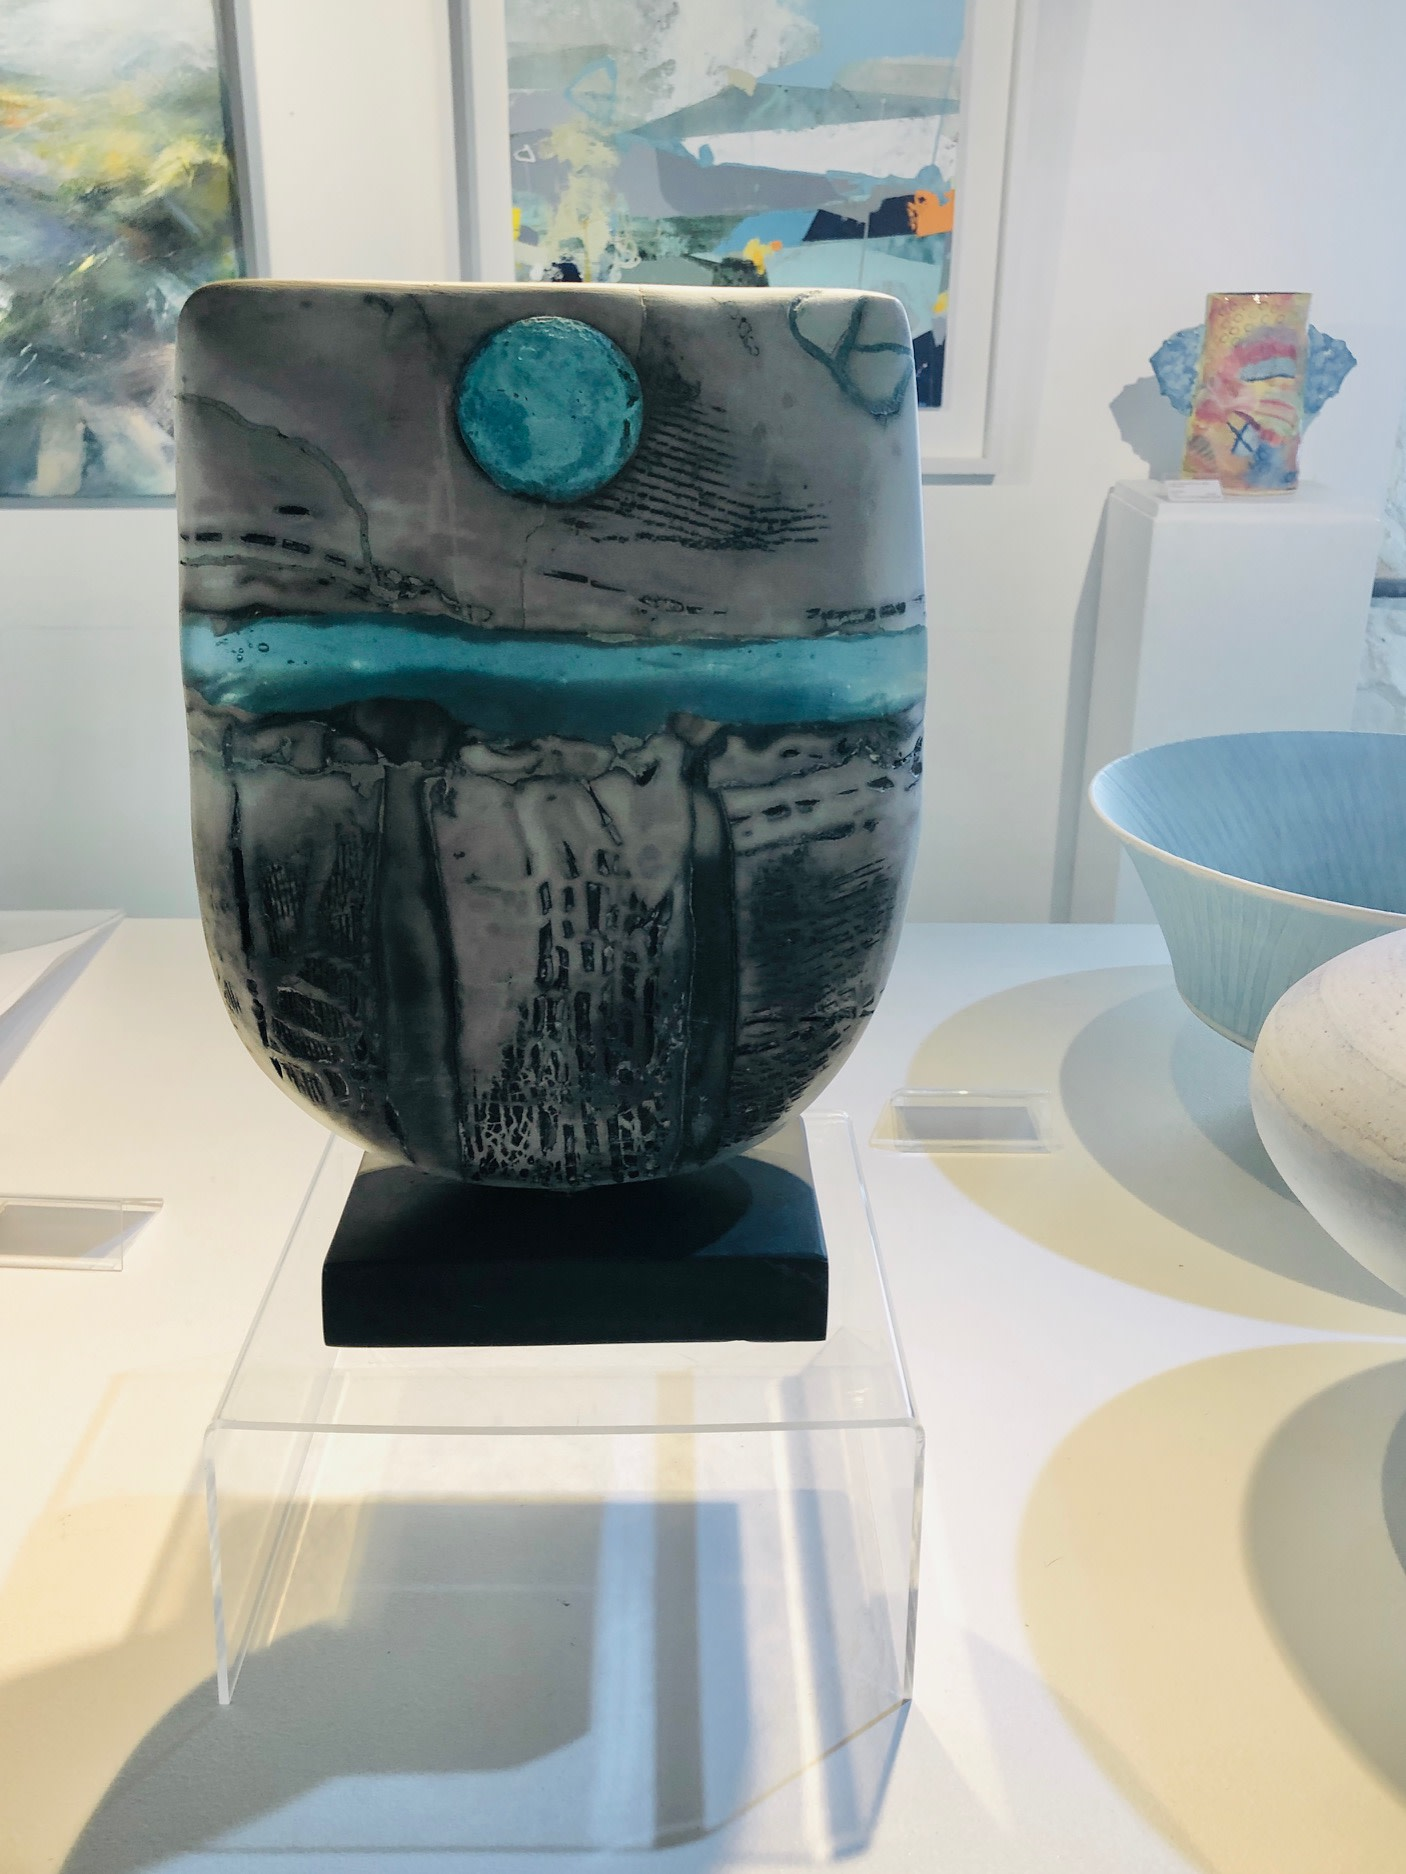 """<span class=""""link fancybox-details-link""""><a href=""""/artists/40-peter-hayes/works/6884-peter-hayes-raku-bow-blue-wave-and-disc-2020/"""">View Detail Page</a></span><div class=""""artist""""><strong>Peter Hayes</strong></div> <div class=""""title""""><em>Raku Bow Blue wave and disc</em>, 2020</div> <div class=""""dimensions"""">h. 30 cm x w. 23 cm</div><div class=""""copyright_line"""">Ownart: £78 x 10 Months, 0% APR</div>"""